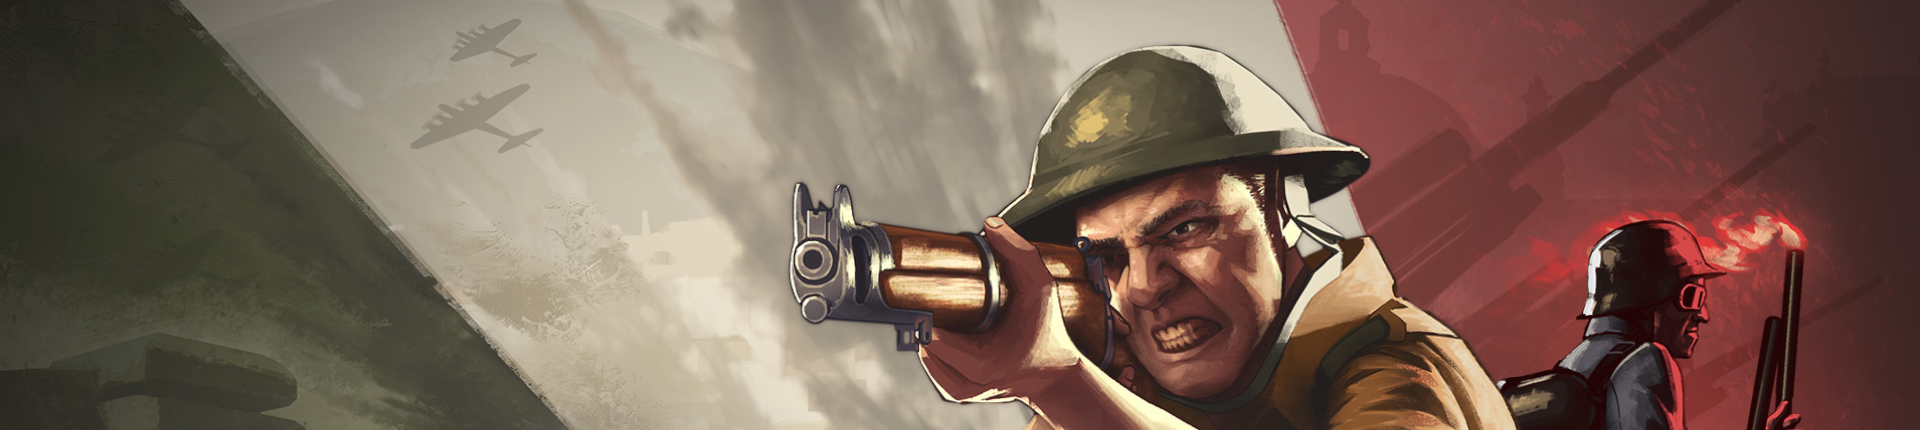 Day of Infamy Dismemberment Update